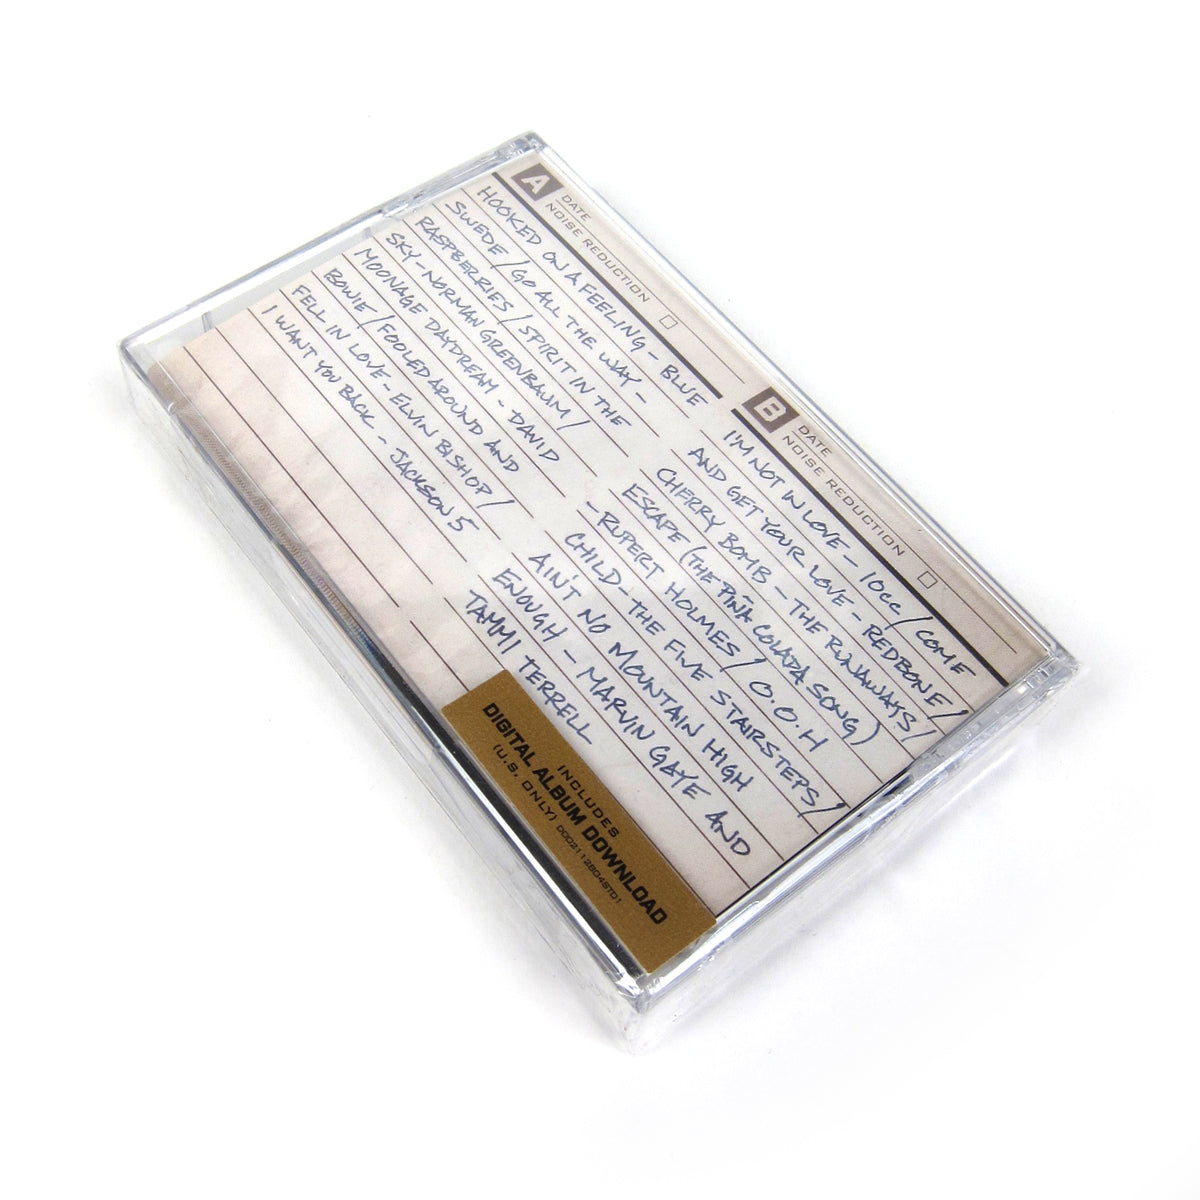 Guardians Of The Galaxy: Awesome Mixtape Cassette